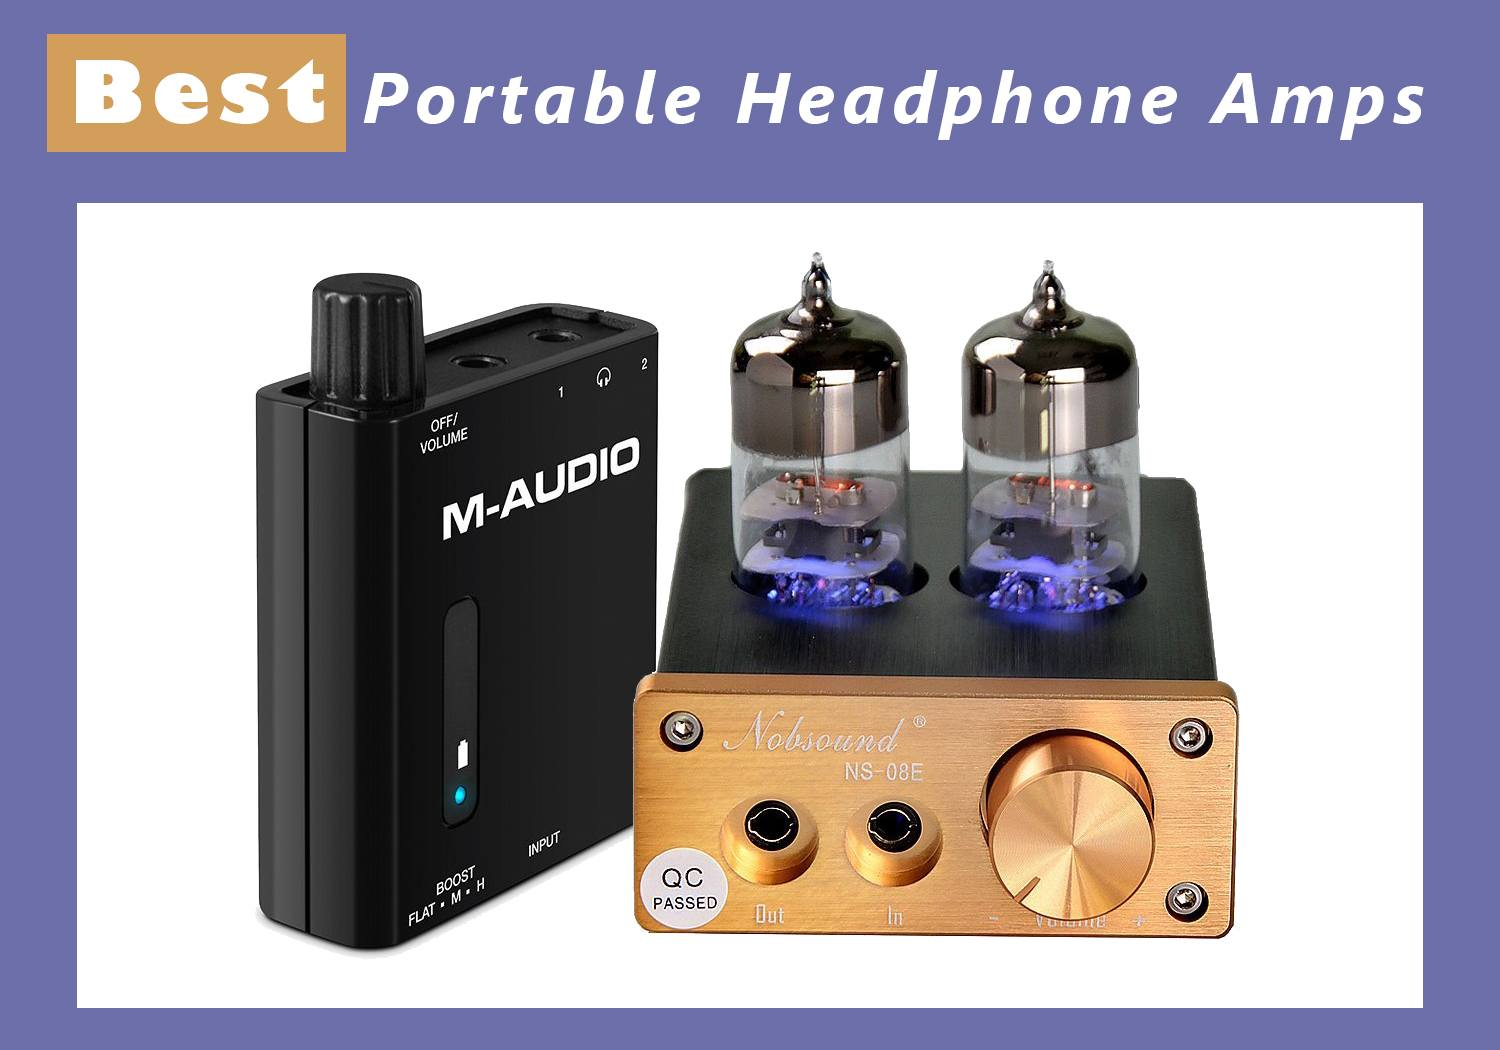 Best Portable Headphone Amps